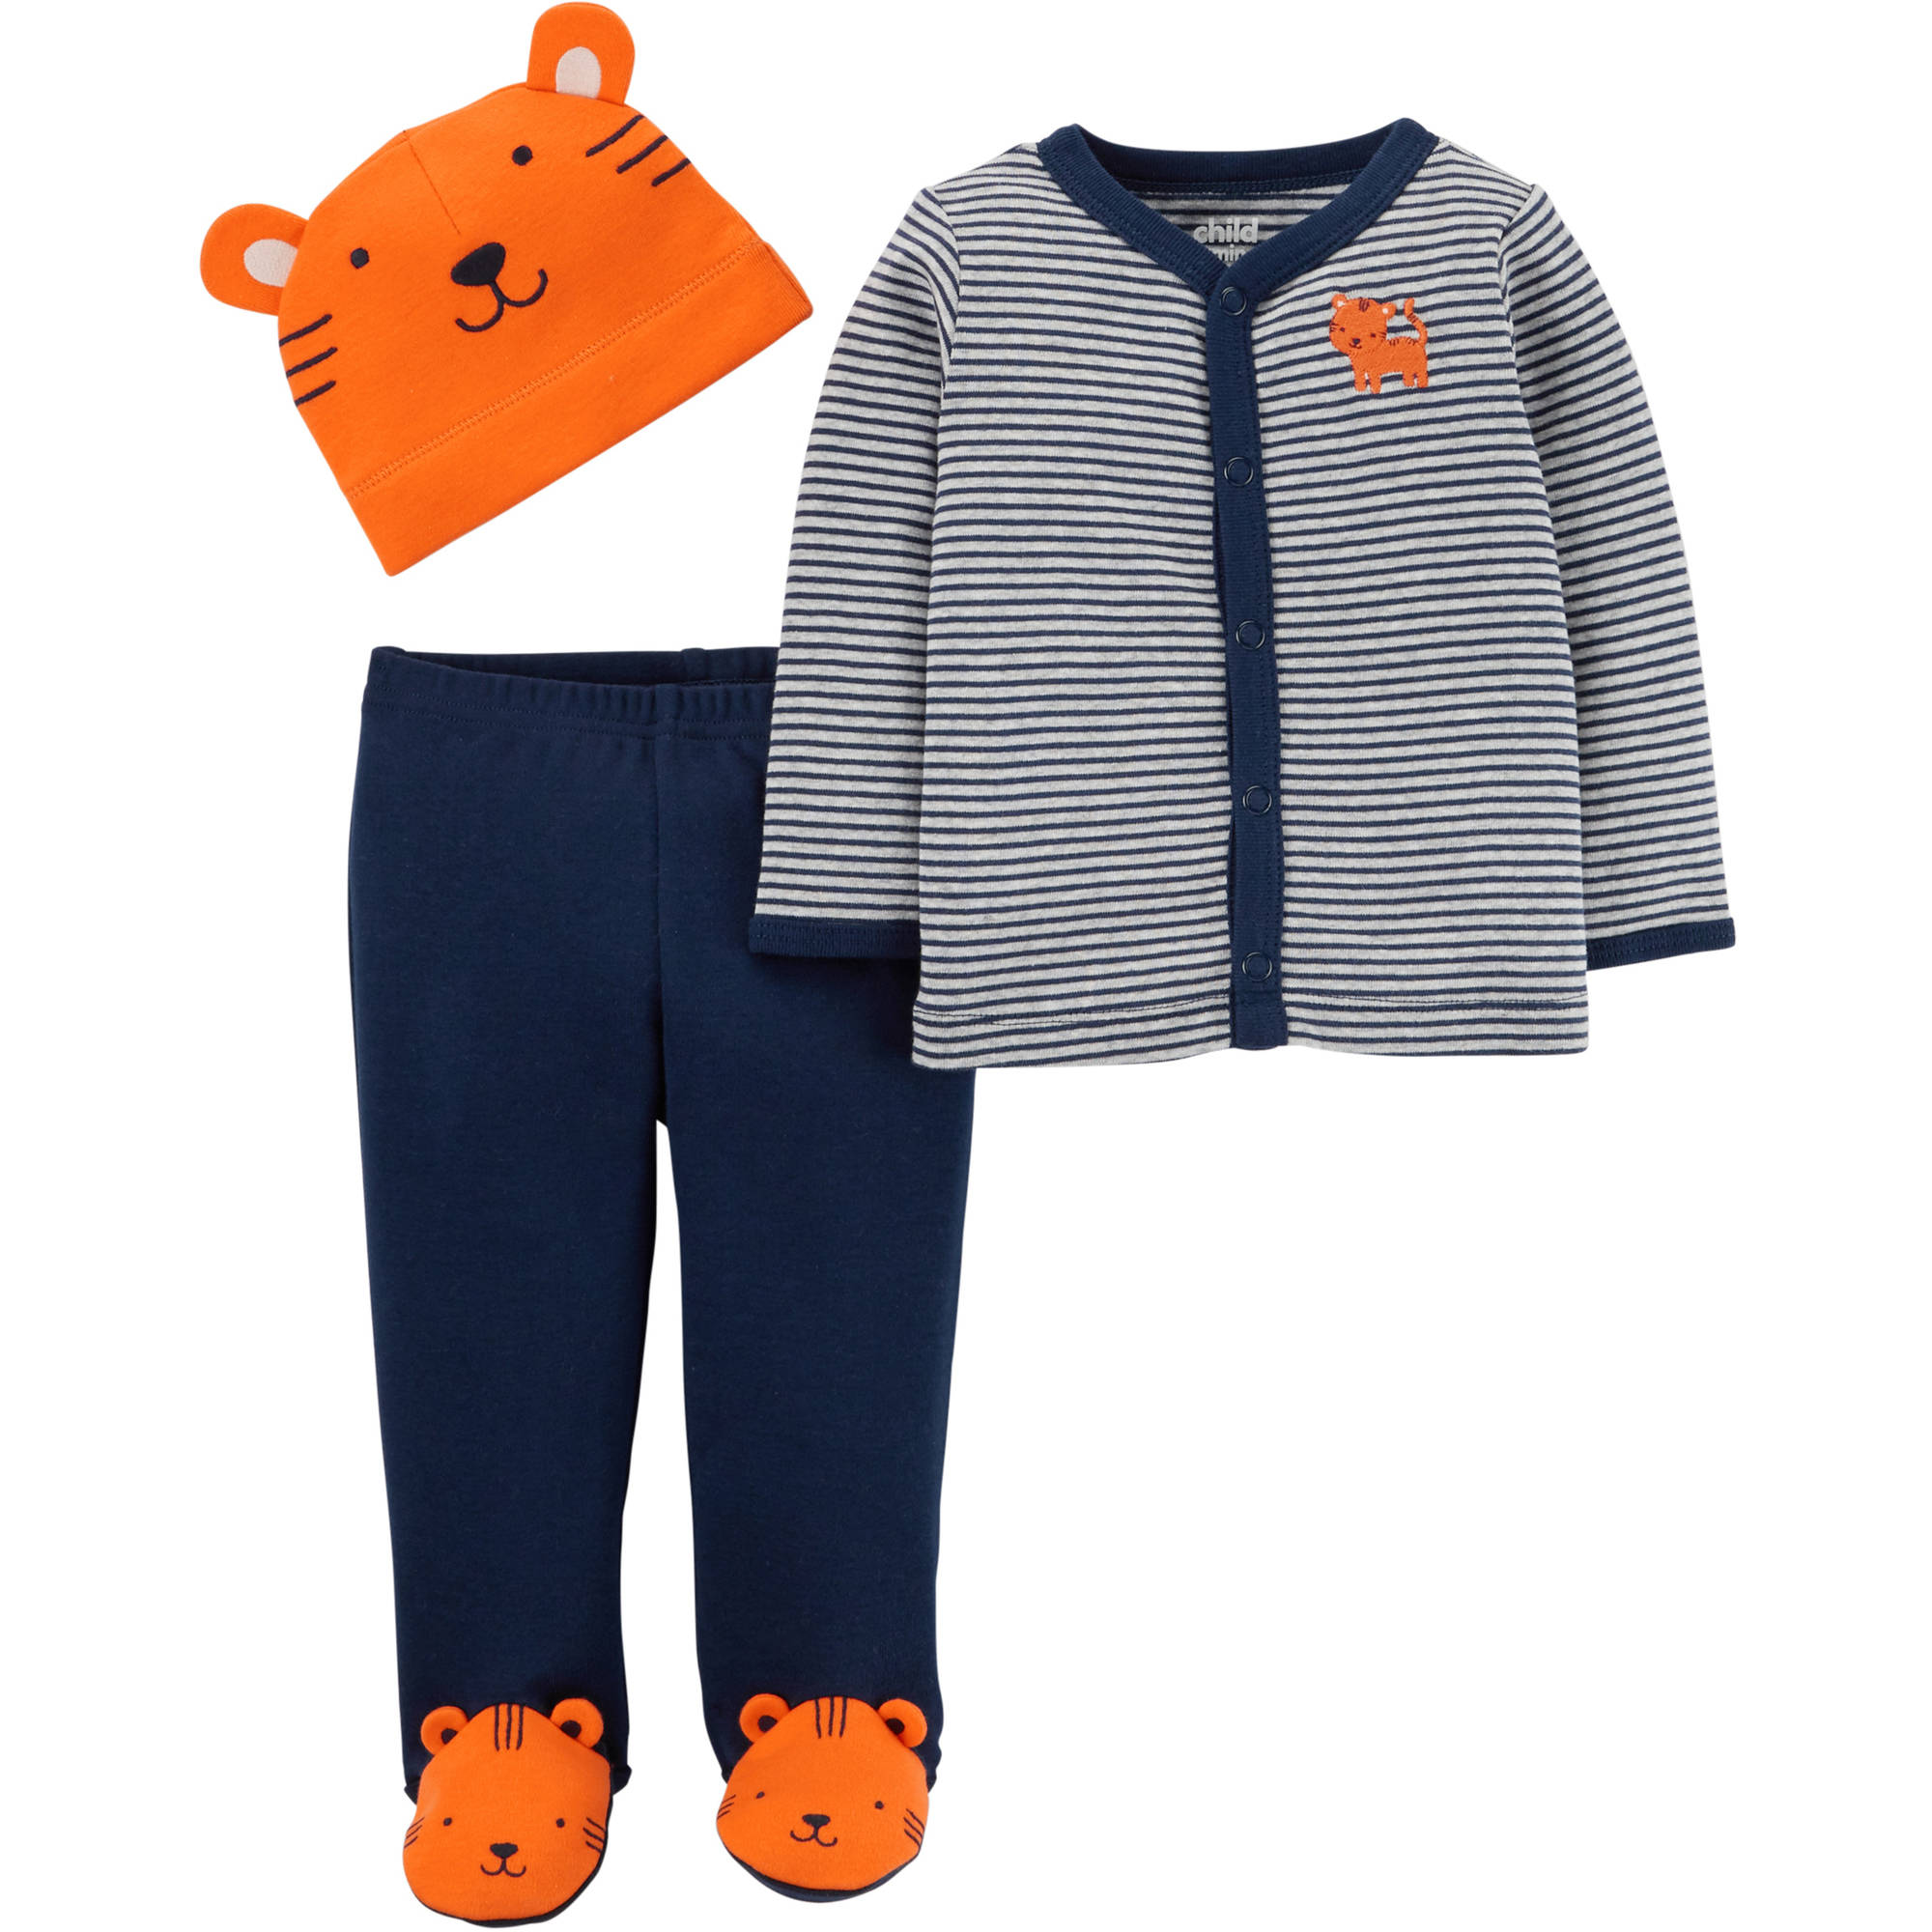 Child of Mine Newborn Baby Boy Cap, Cardigan and Foot Pant Set-3 Pieces